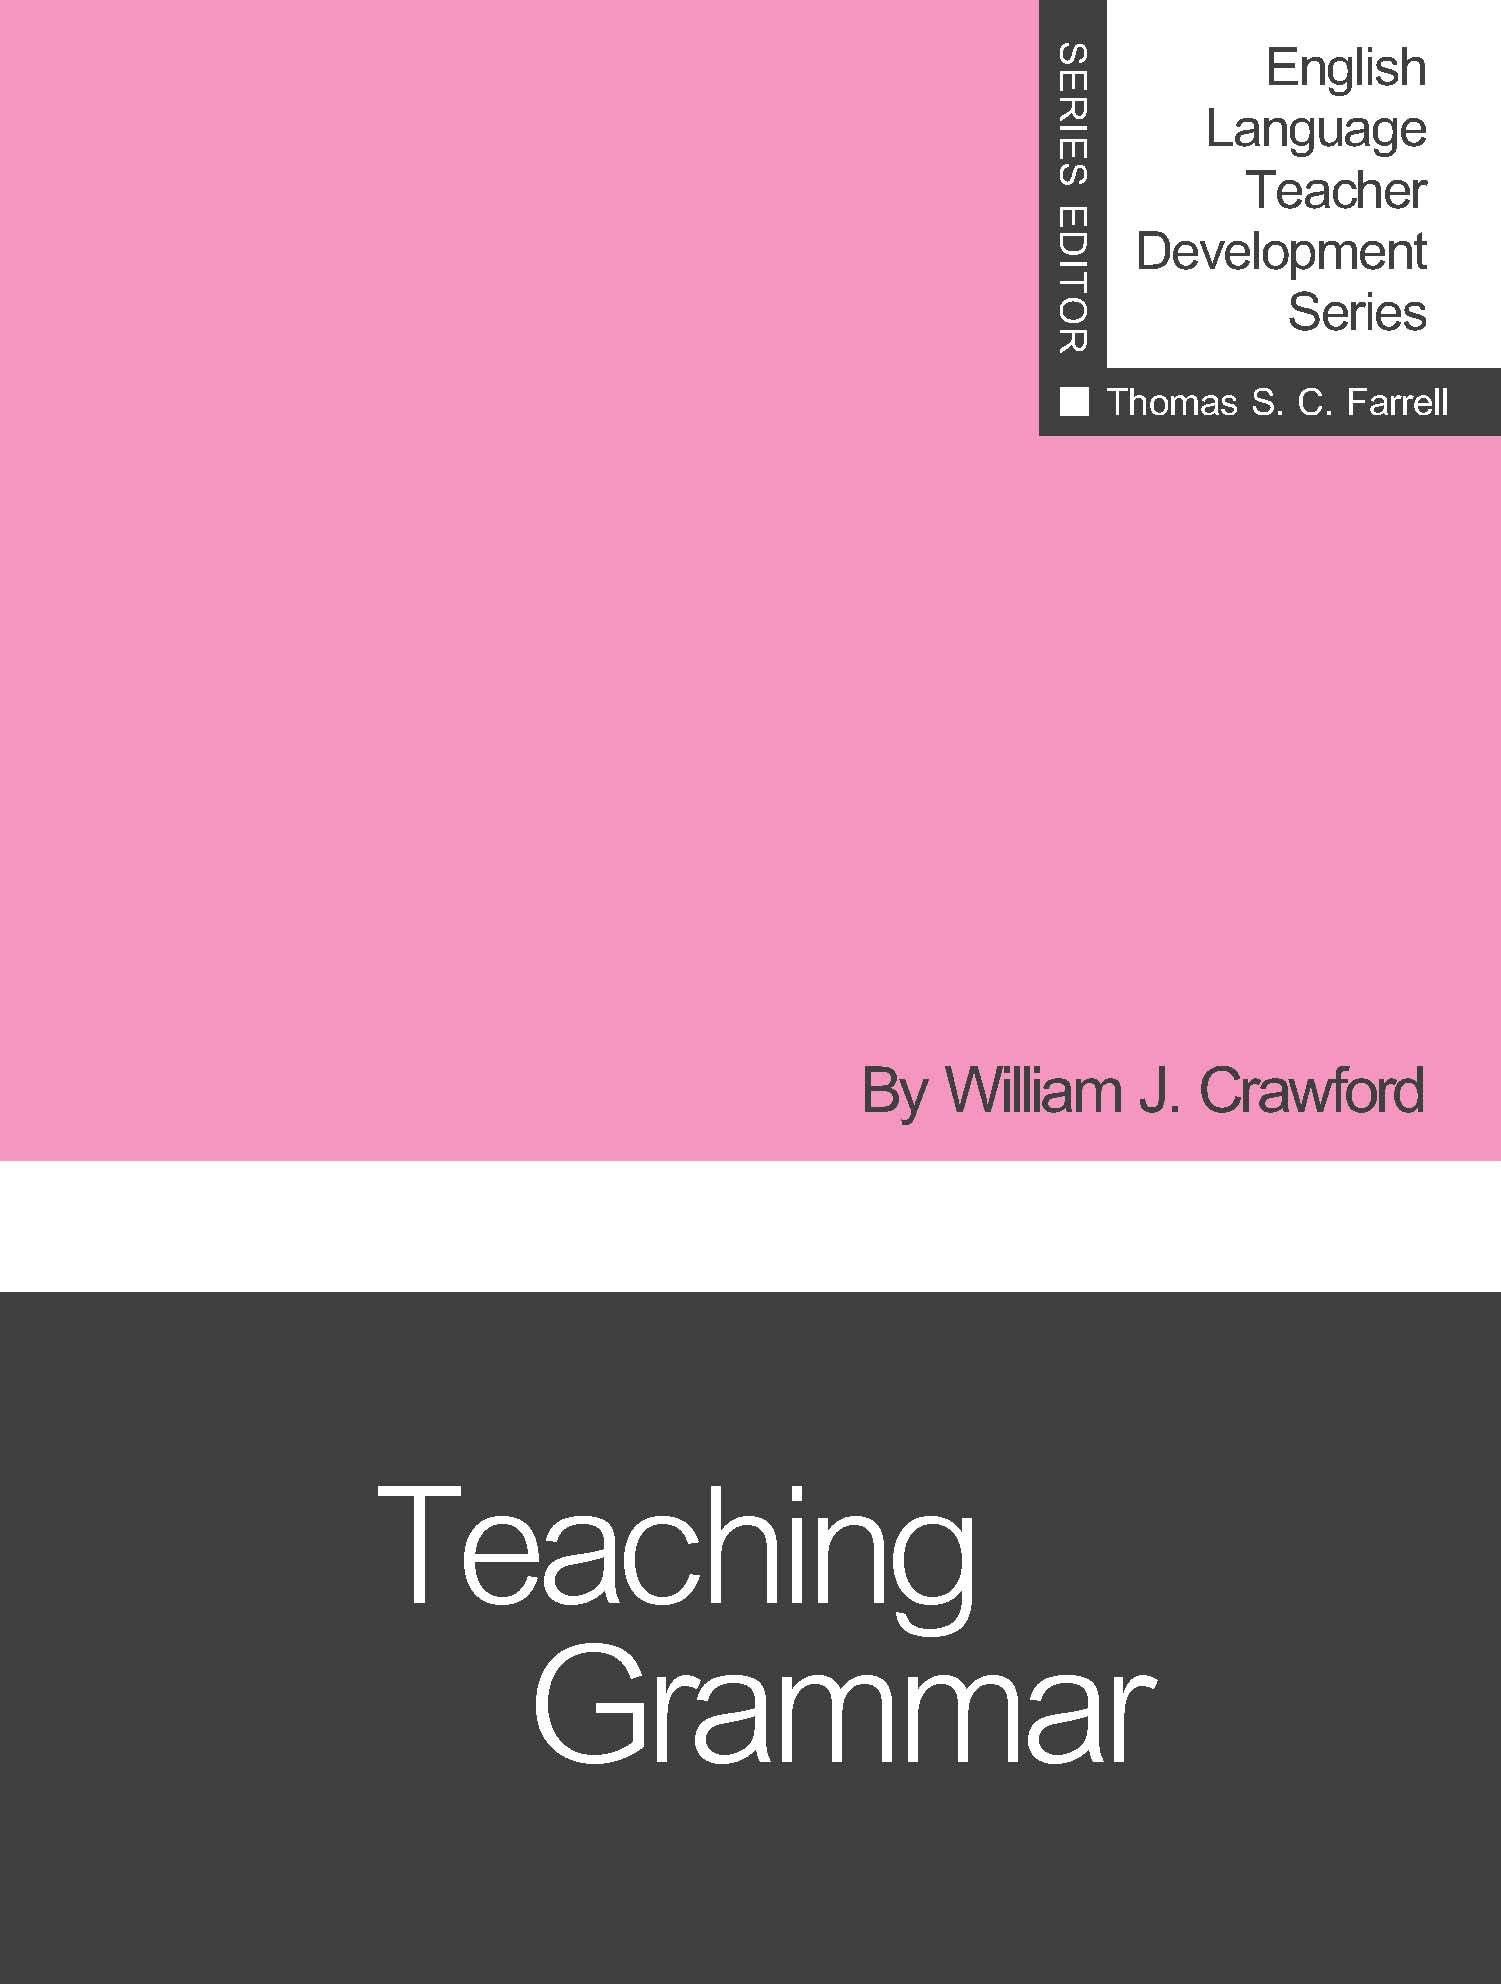 028_Teaching Grammar_Cover